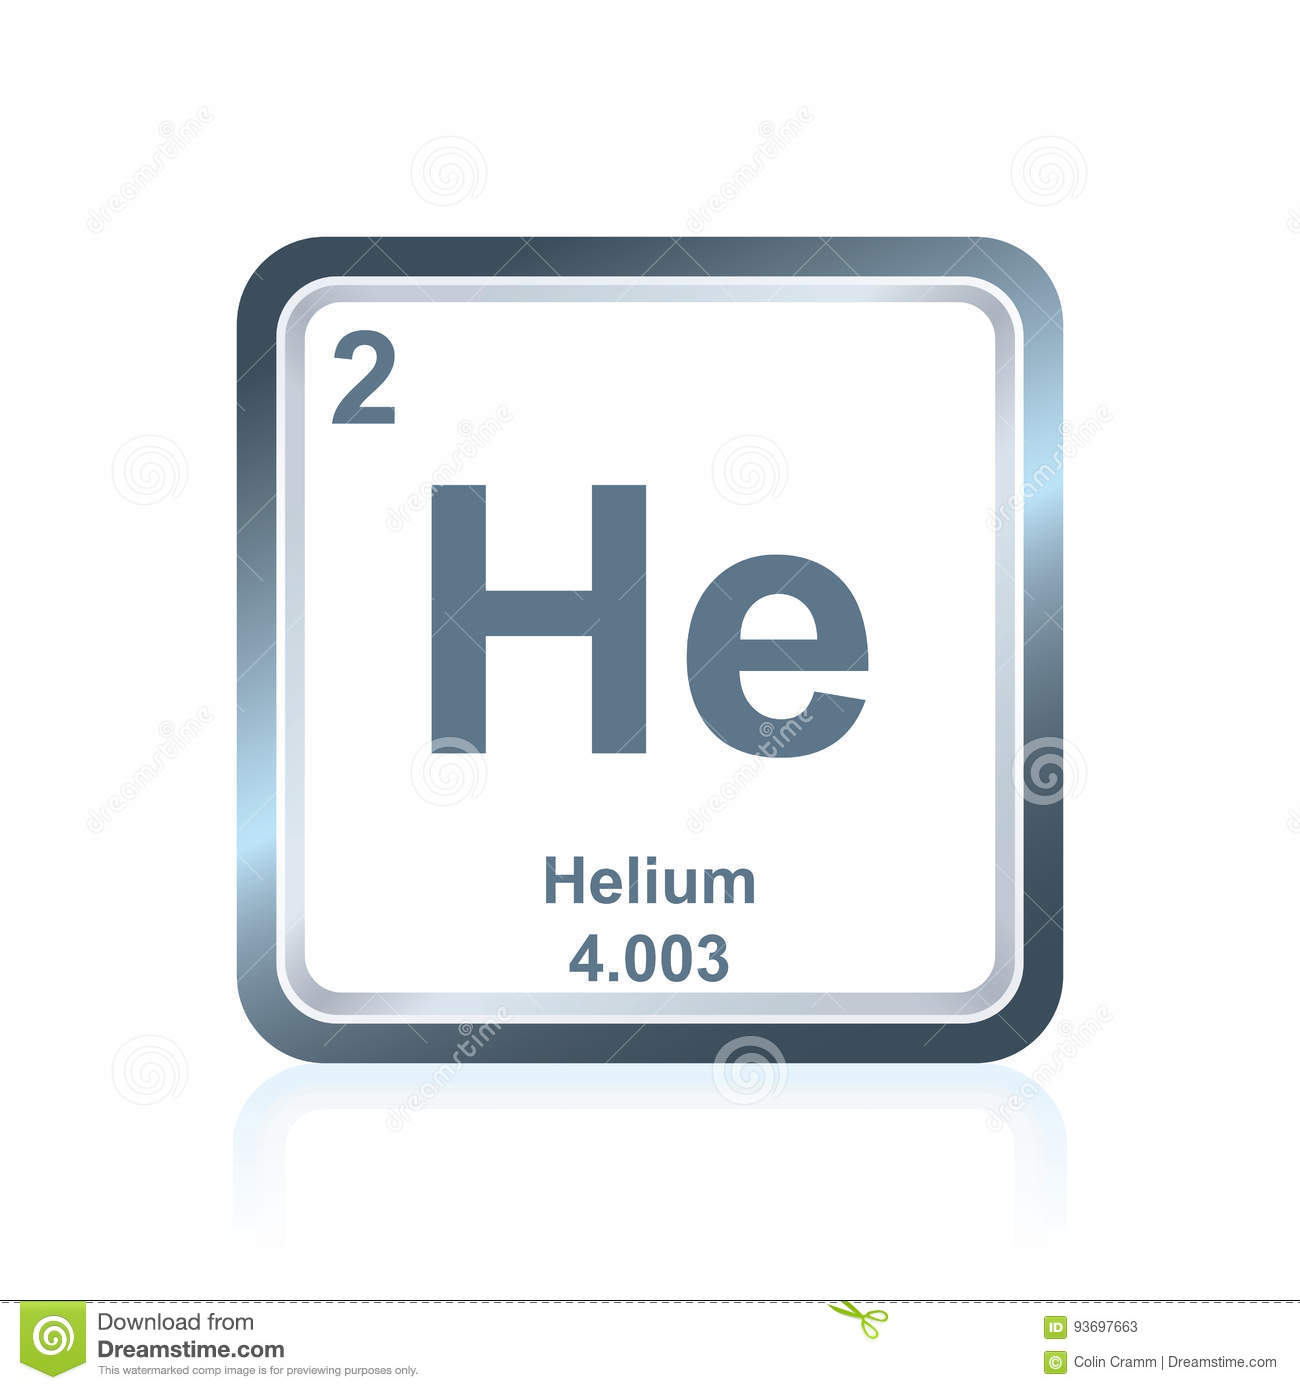 Chemical element helium from the periodic table stock vector download chemical element helium from the periodic table stock vector illustration of futuristic chemistry urtaz Images